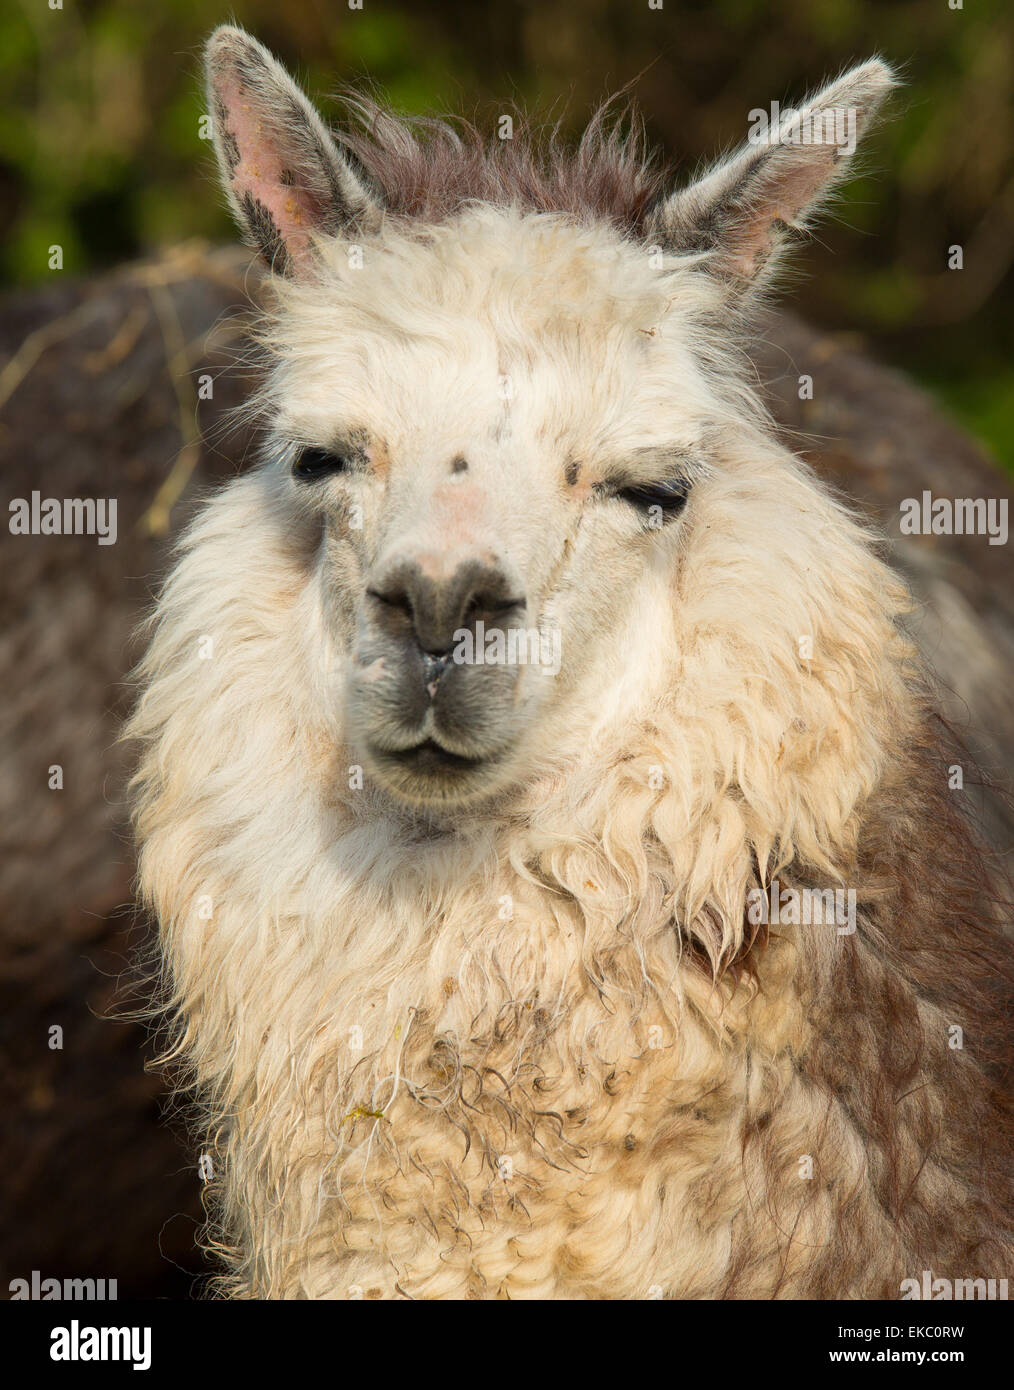 Alpaca portrait South American camelid resembles small llama with coat used for wool and cute smile - Stock Image